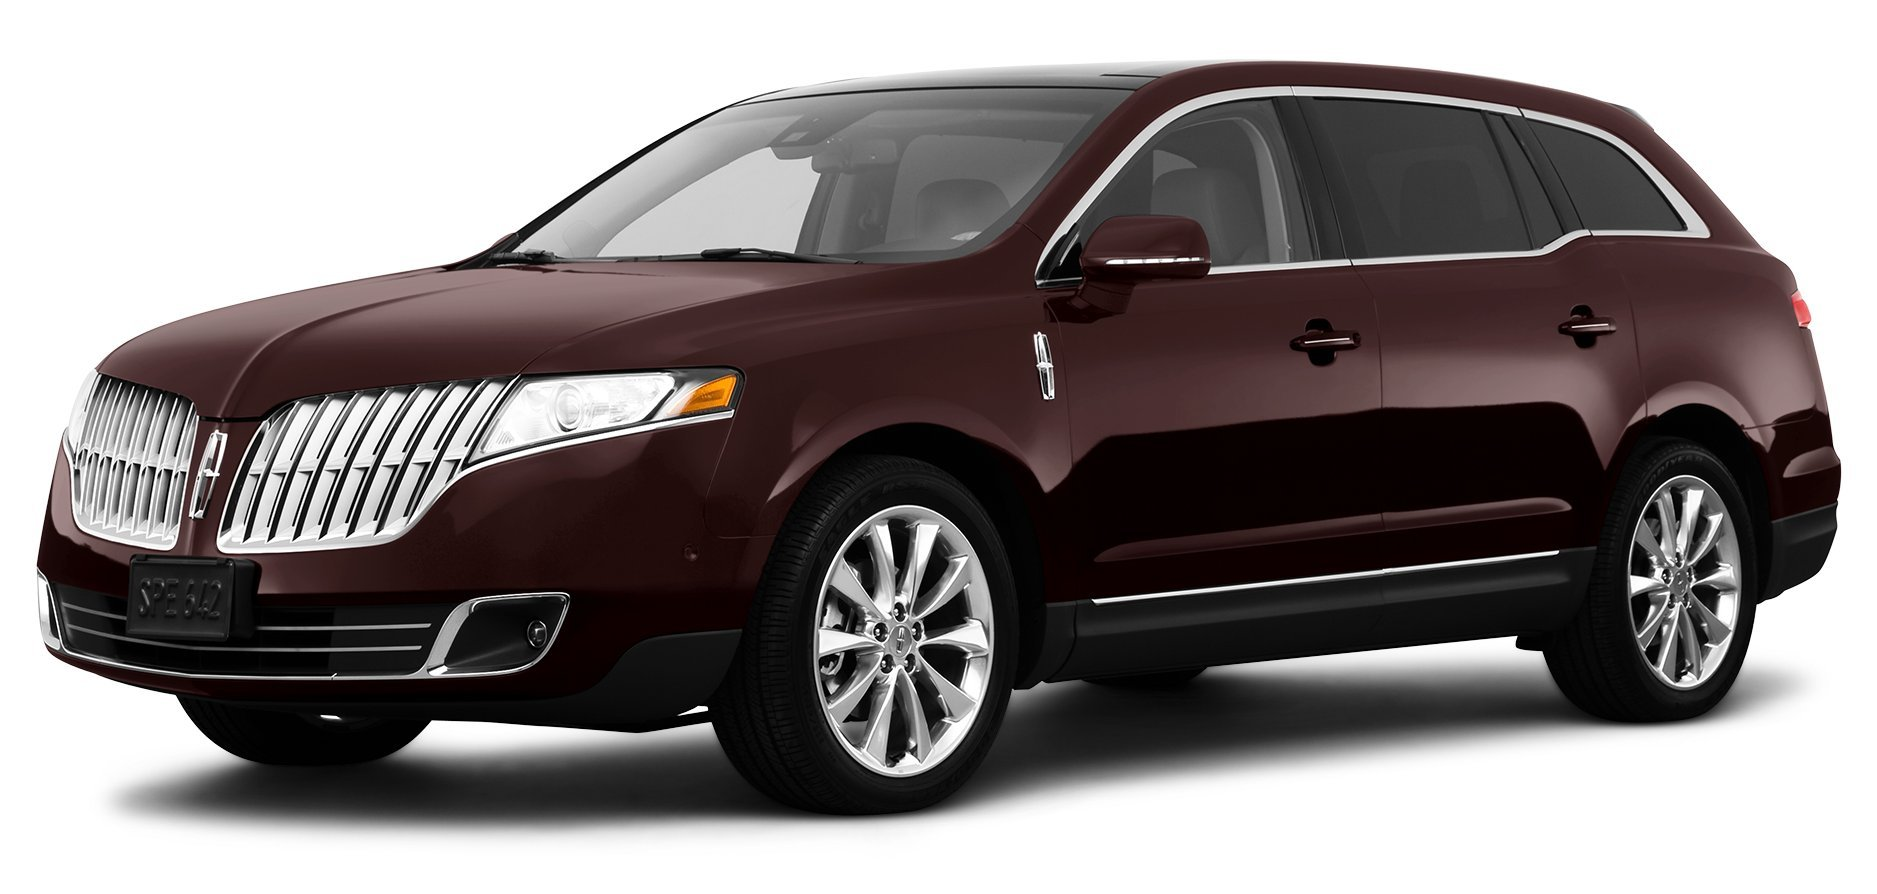 2010 lincoln mkt 4 door wagon 3 7l all wheel drive